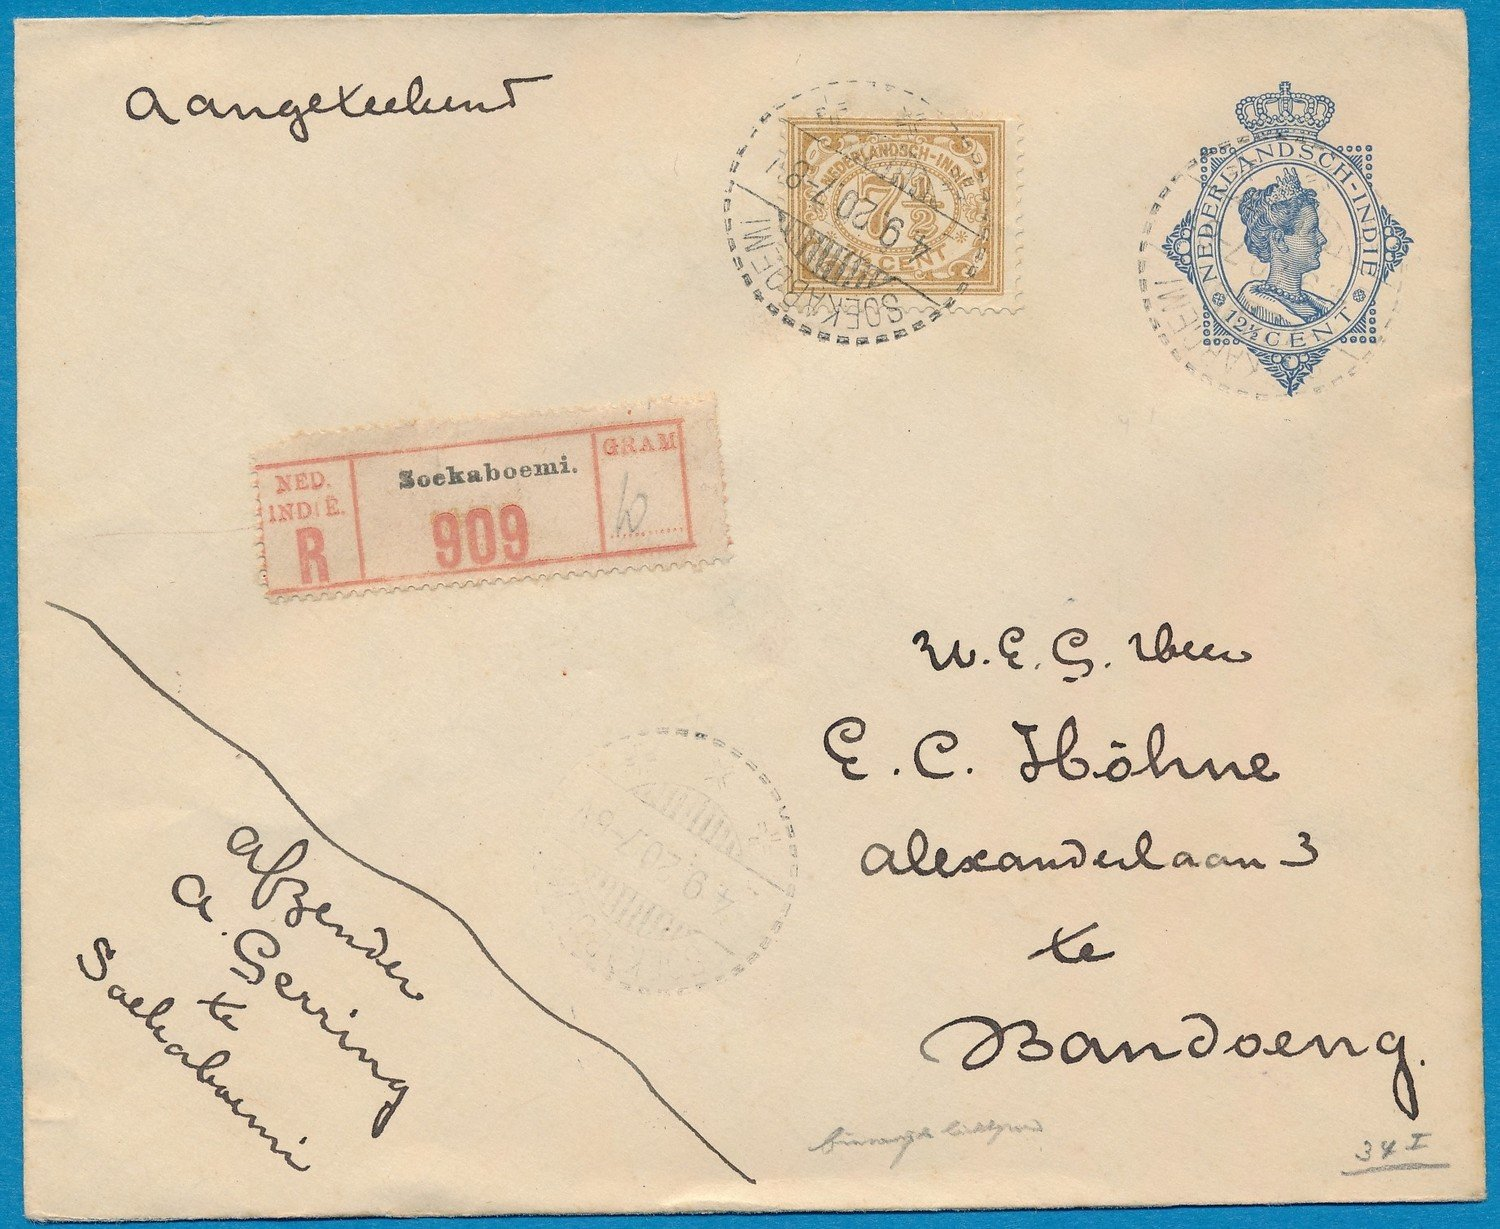 NETHERLANDS EAST INDIES R envelope 1920 Soekaboemi